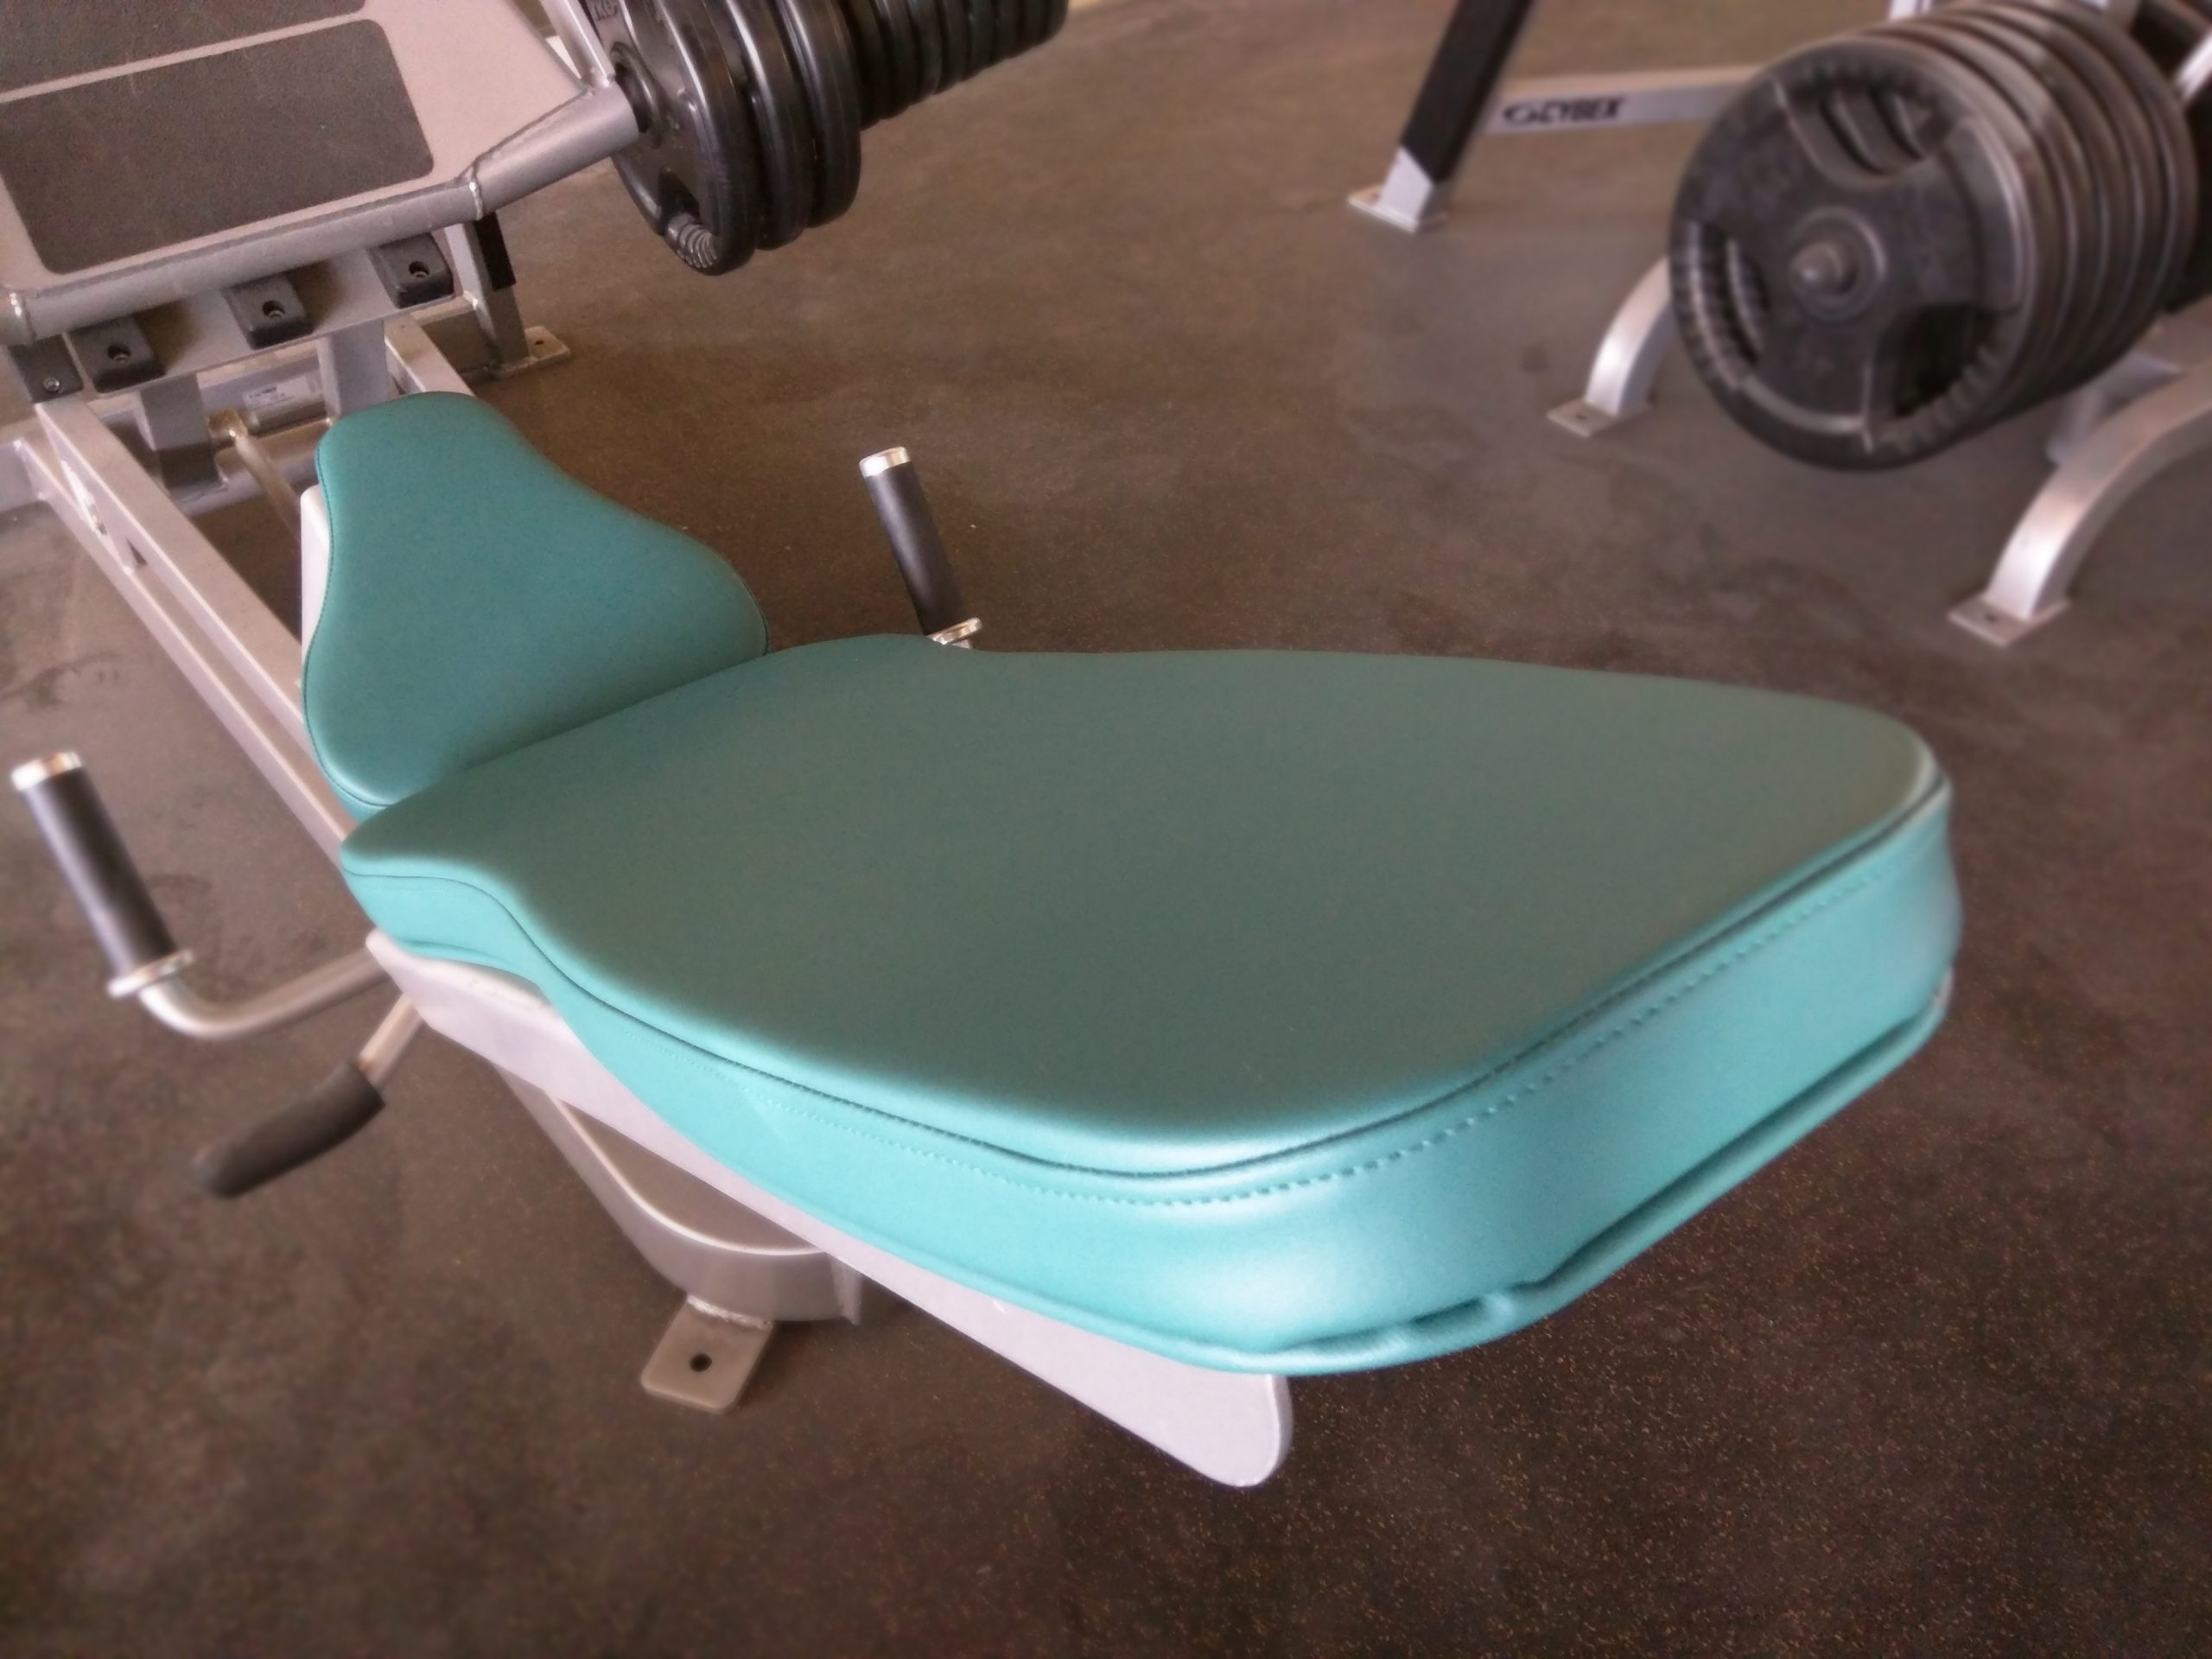 Cybex Leg Press Fitness Equipment Reupholstered in BoltaSport Olympus Grotto